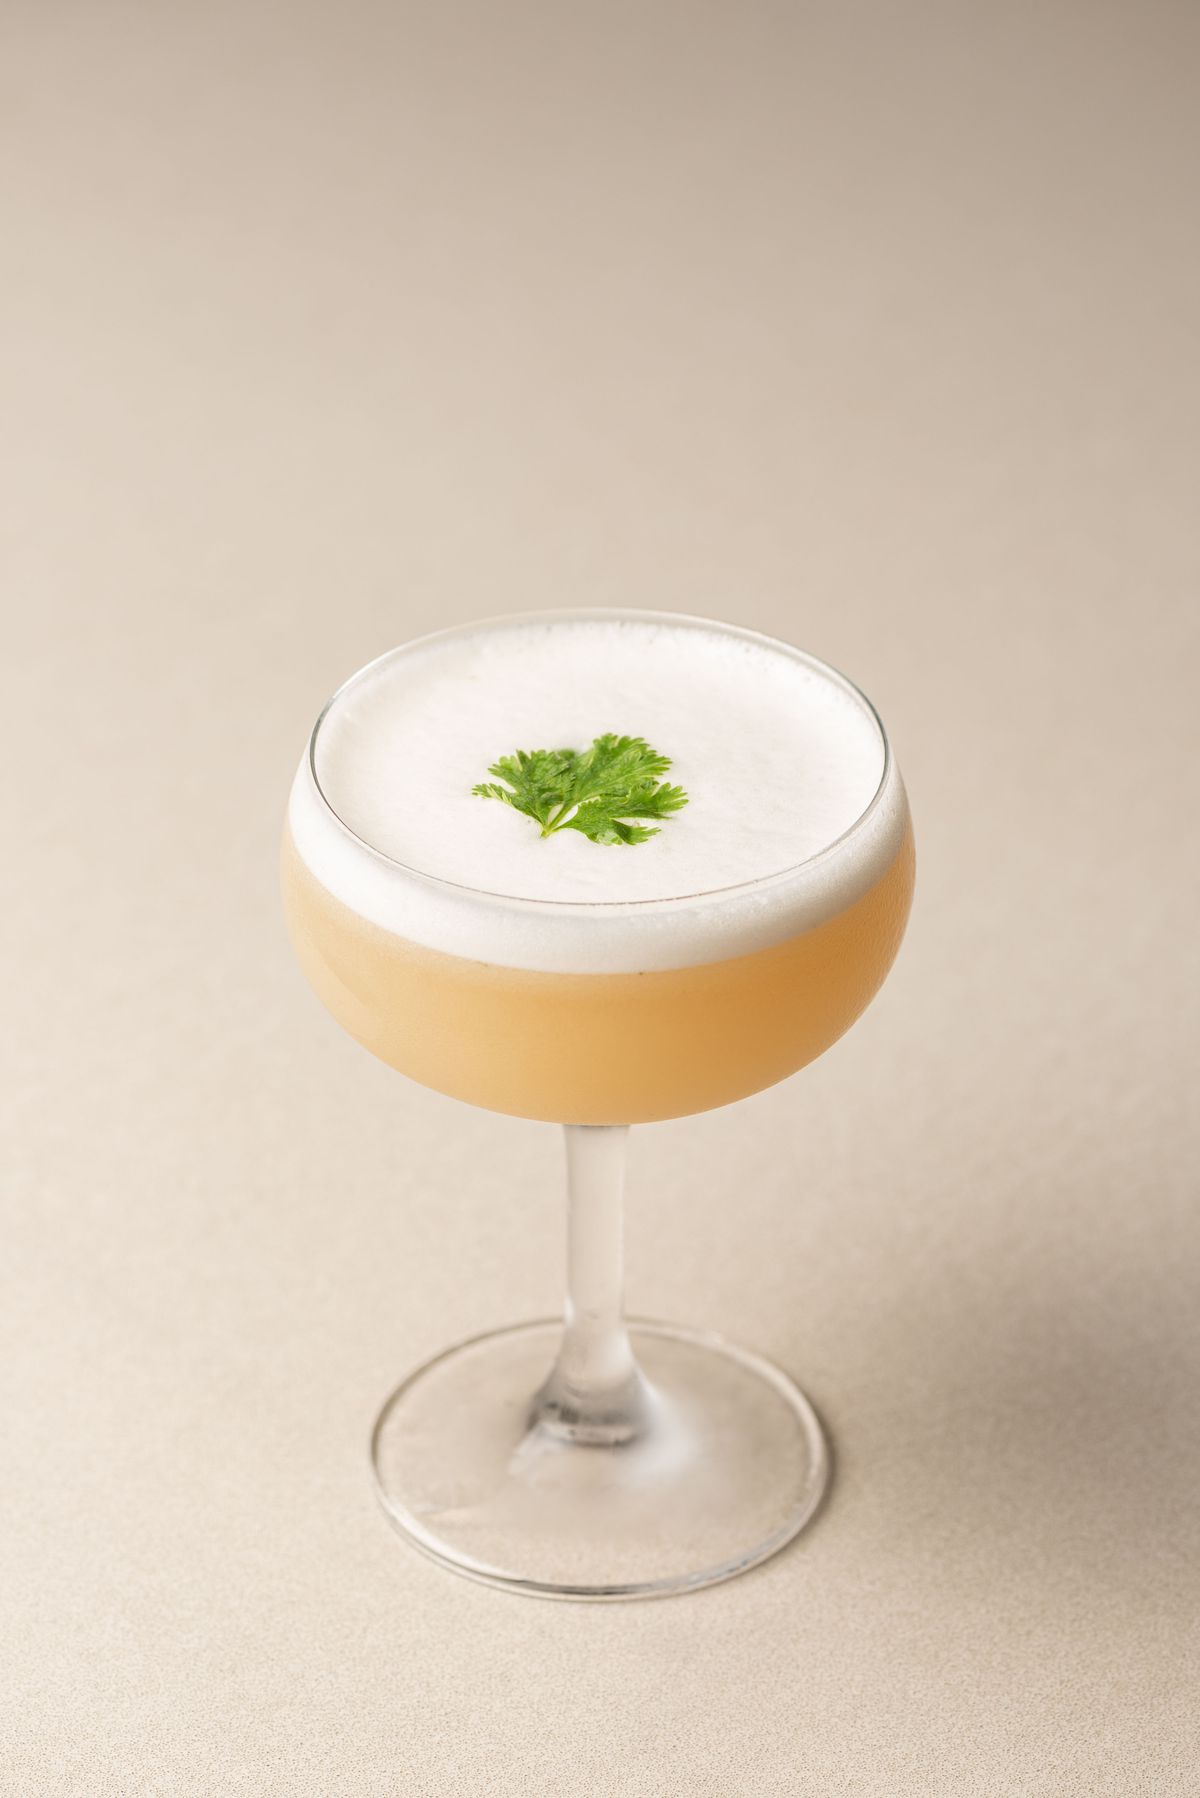 A frothy cocktail in light orange with a coupe glass on a white table.